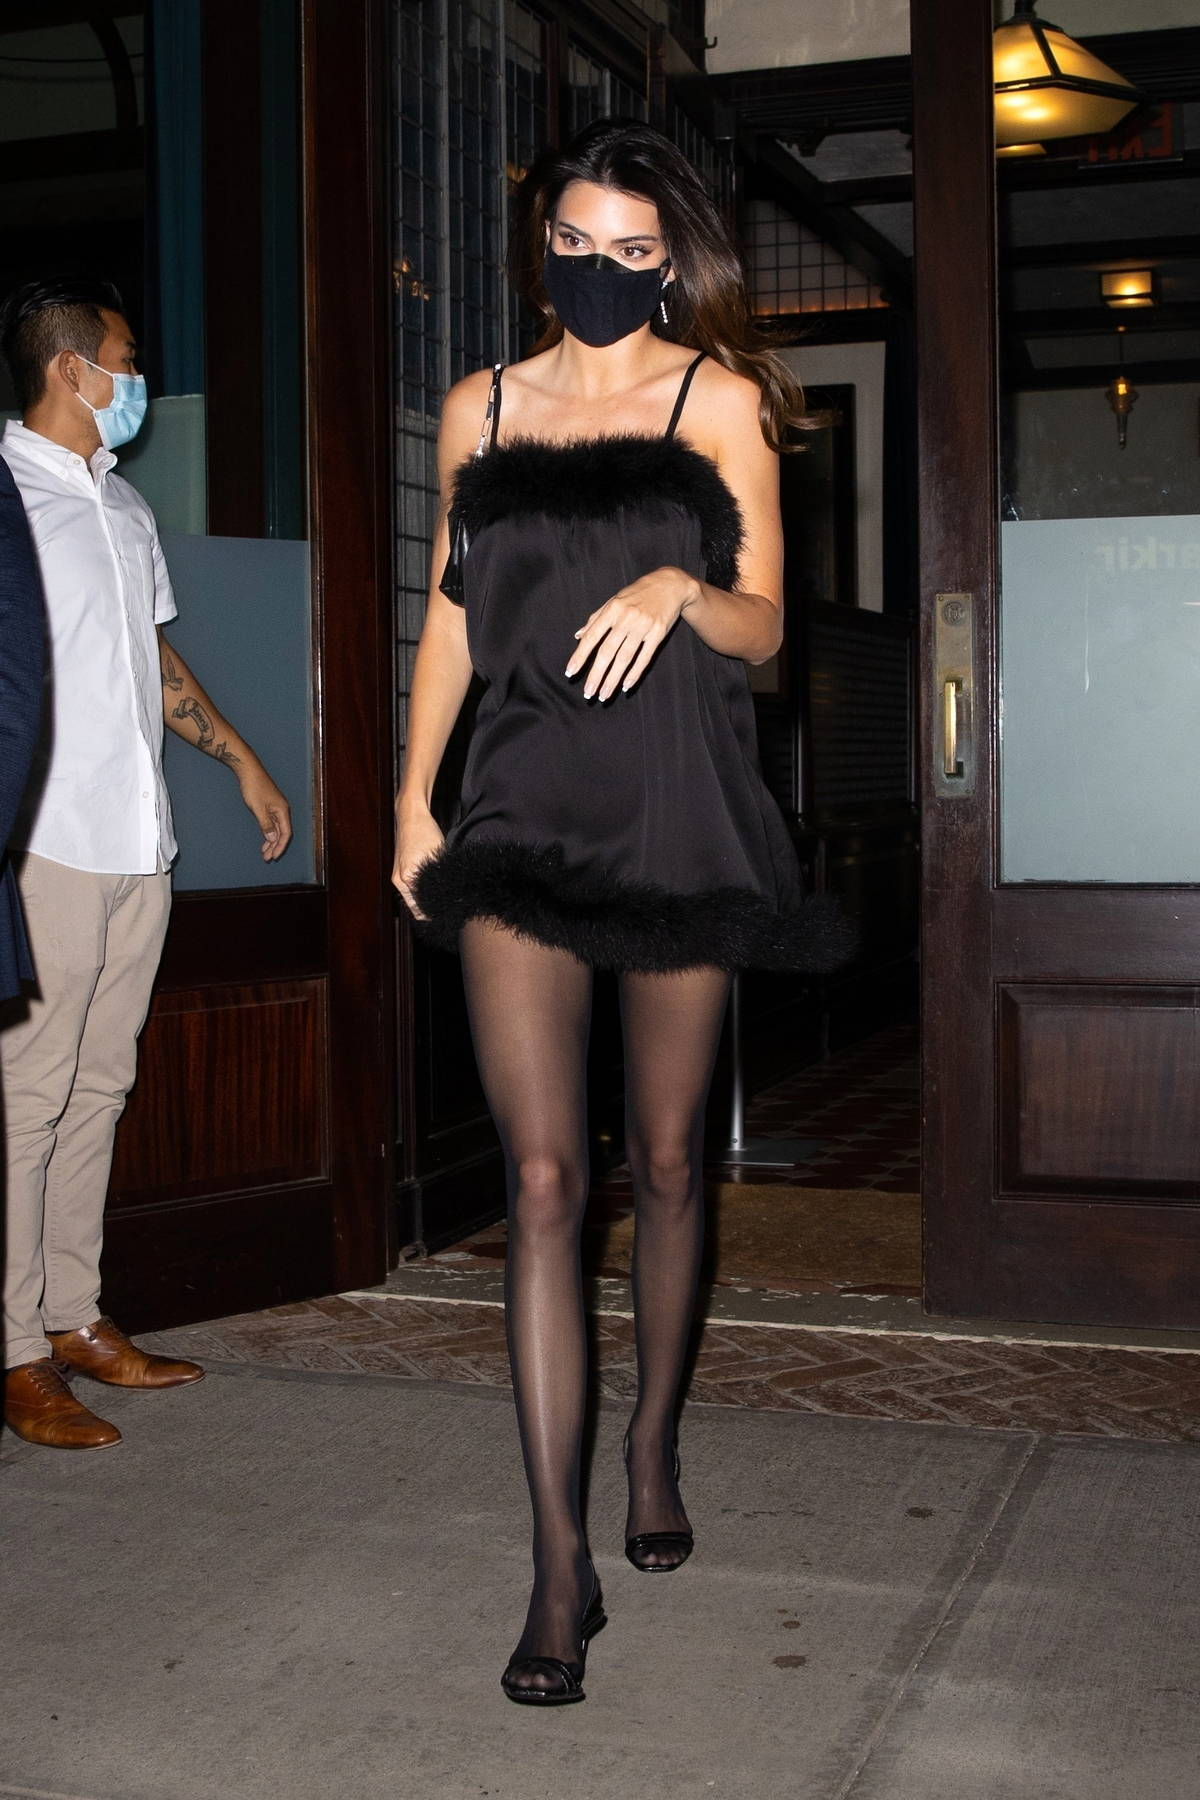 Kendall Jenner cuts a striking figure wearing a short black fur-lined dress as she heads out in New York City